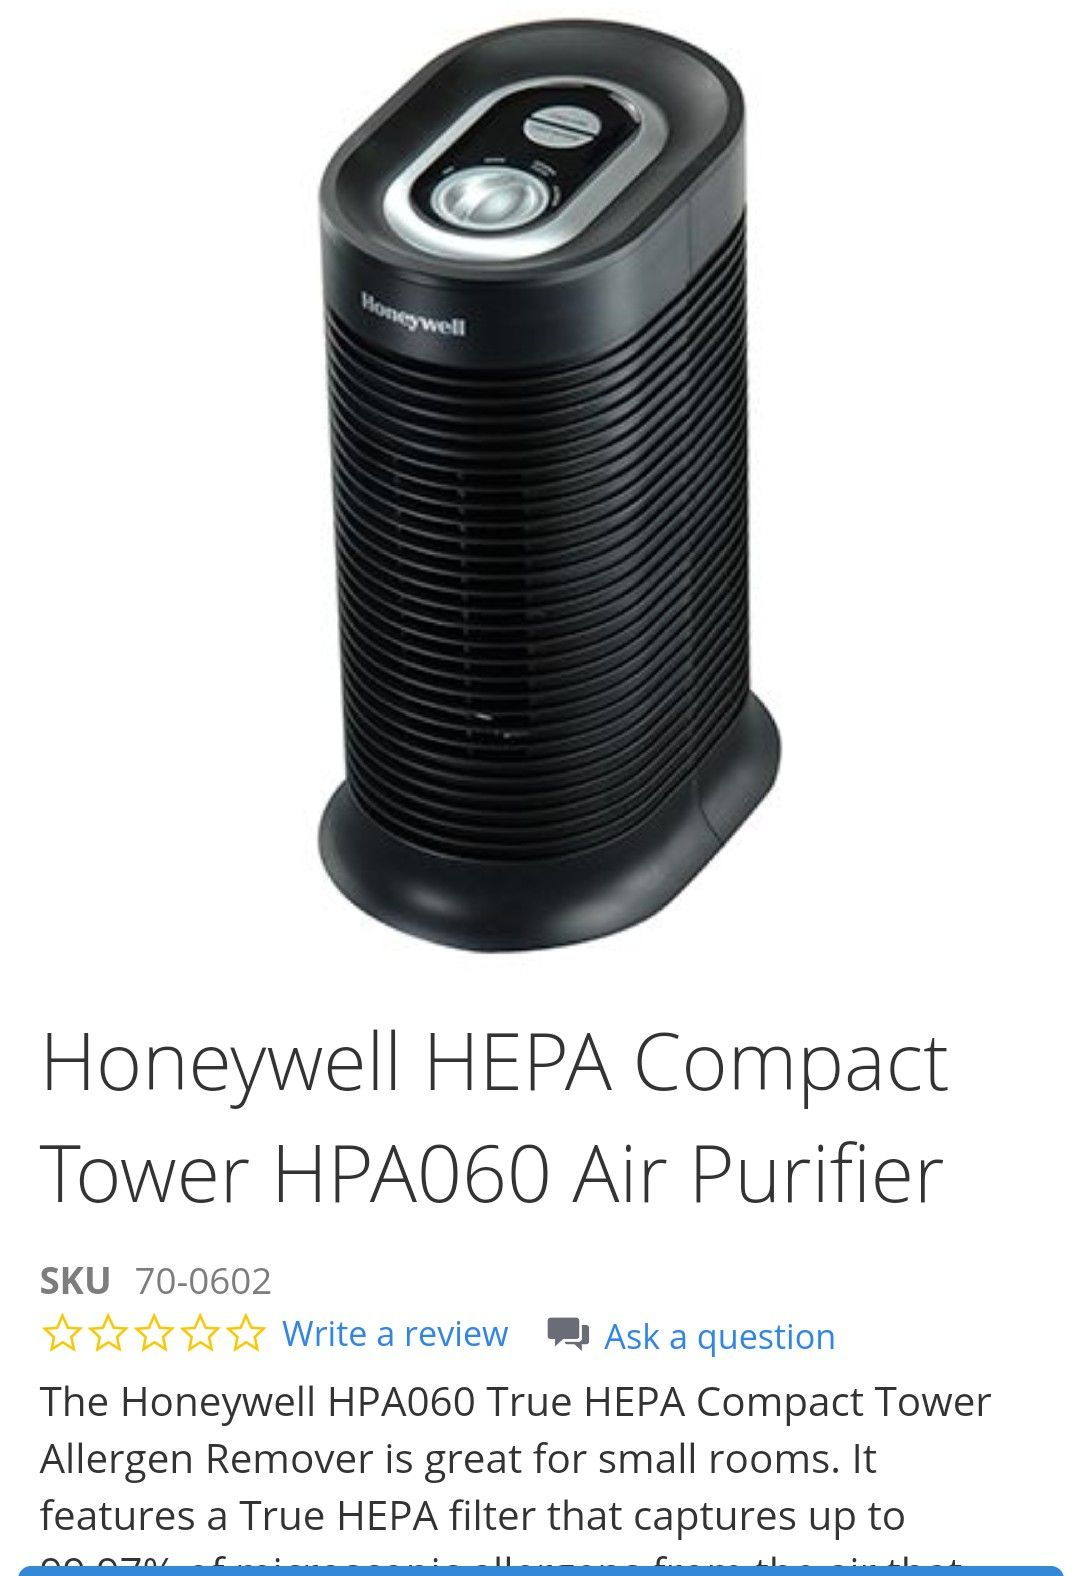 Honeywell Compact Tower Air Purifier (Got 2 of these msg if want both)